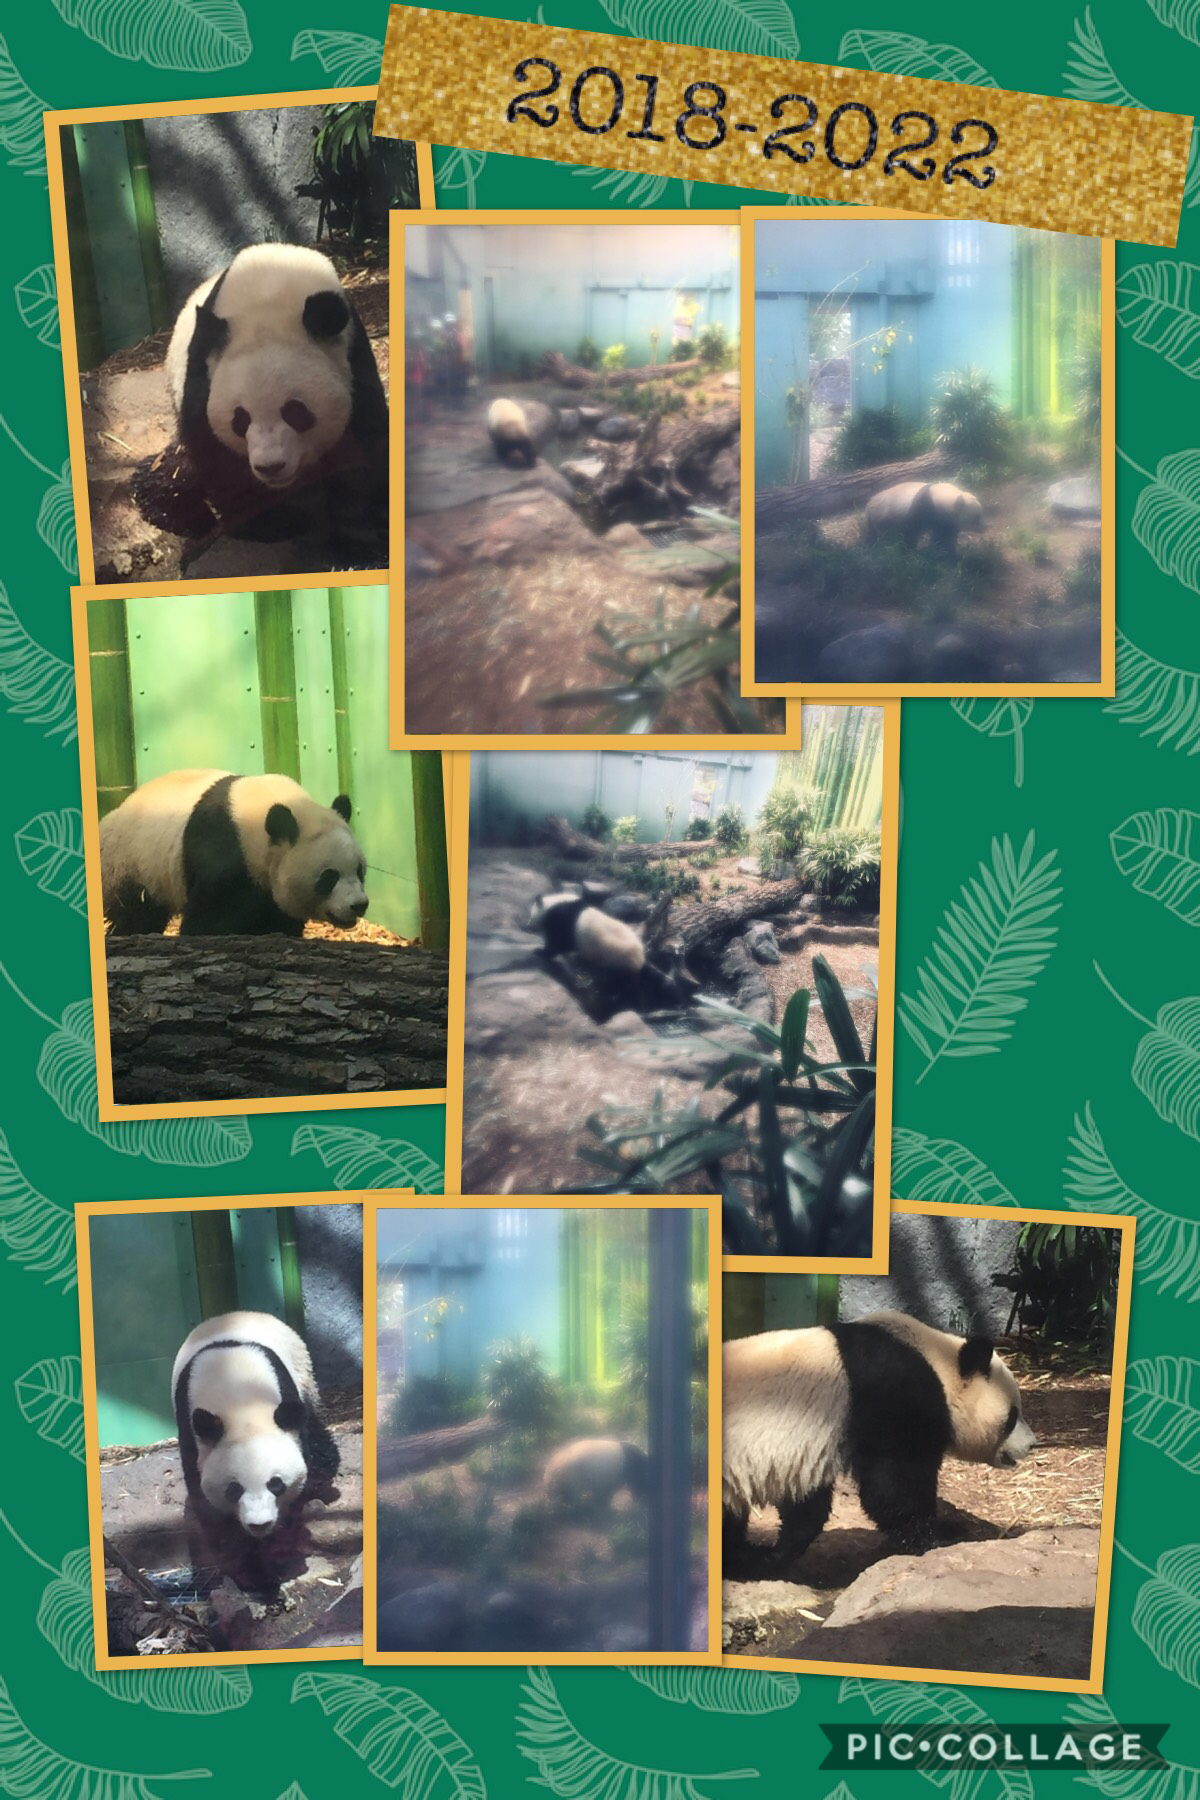 This is one of the new-ish pandas at the Calgary Zoo